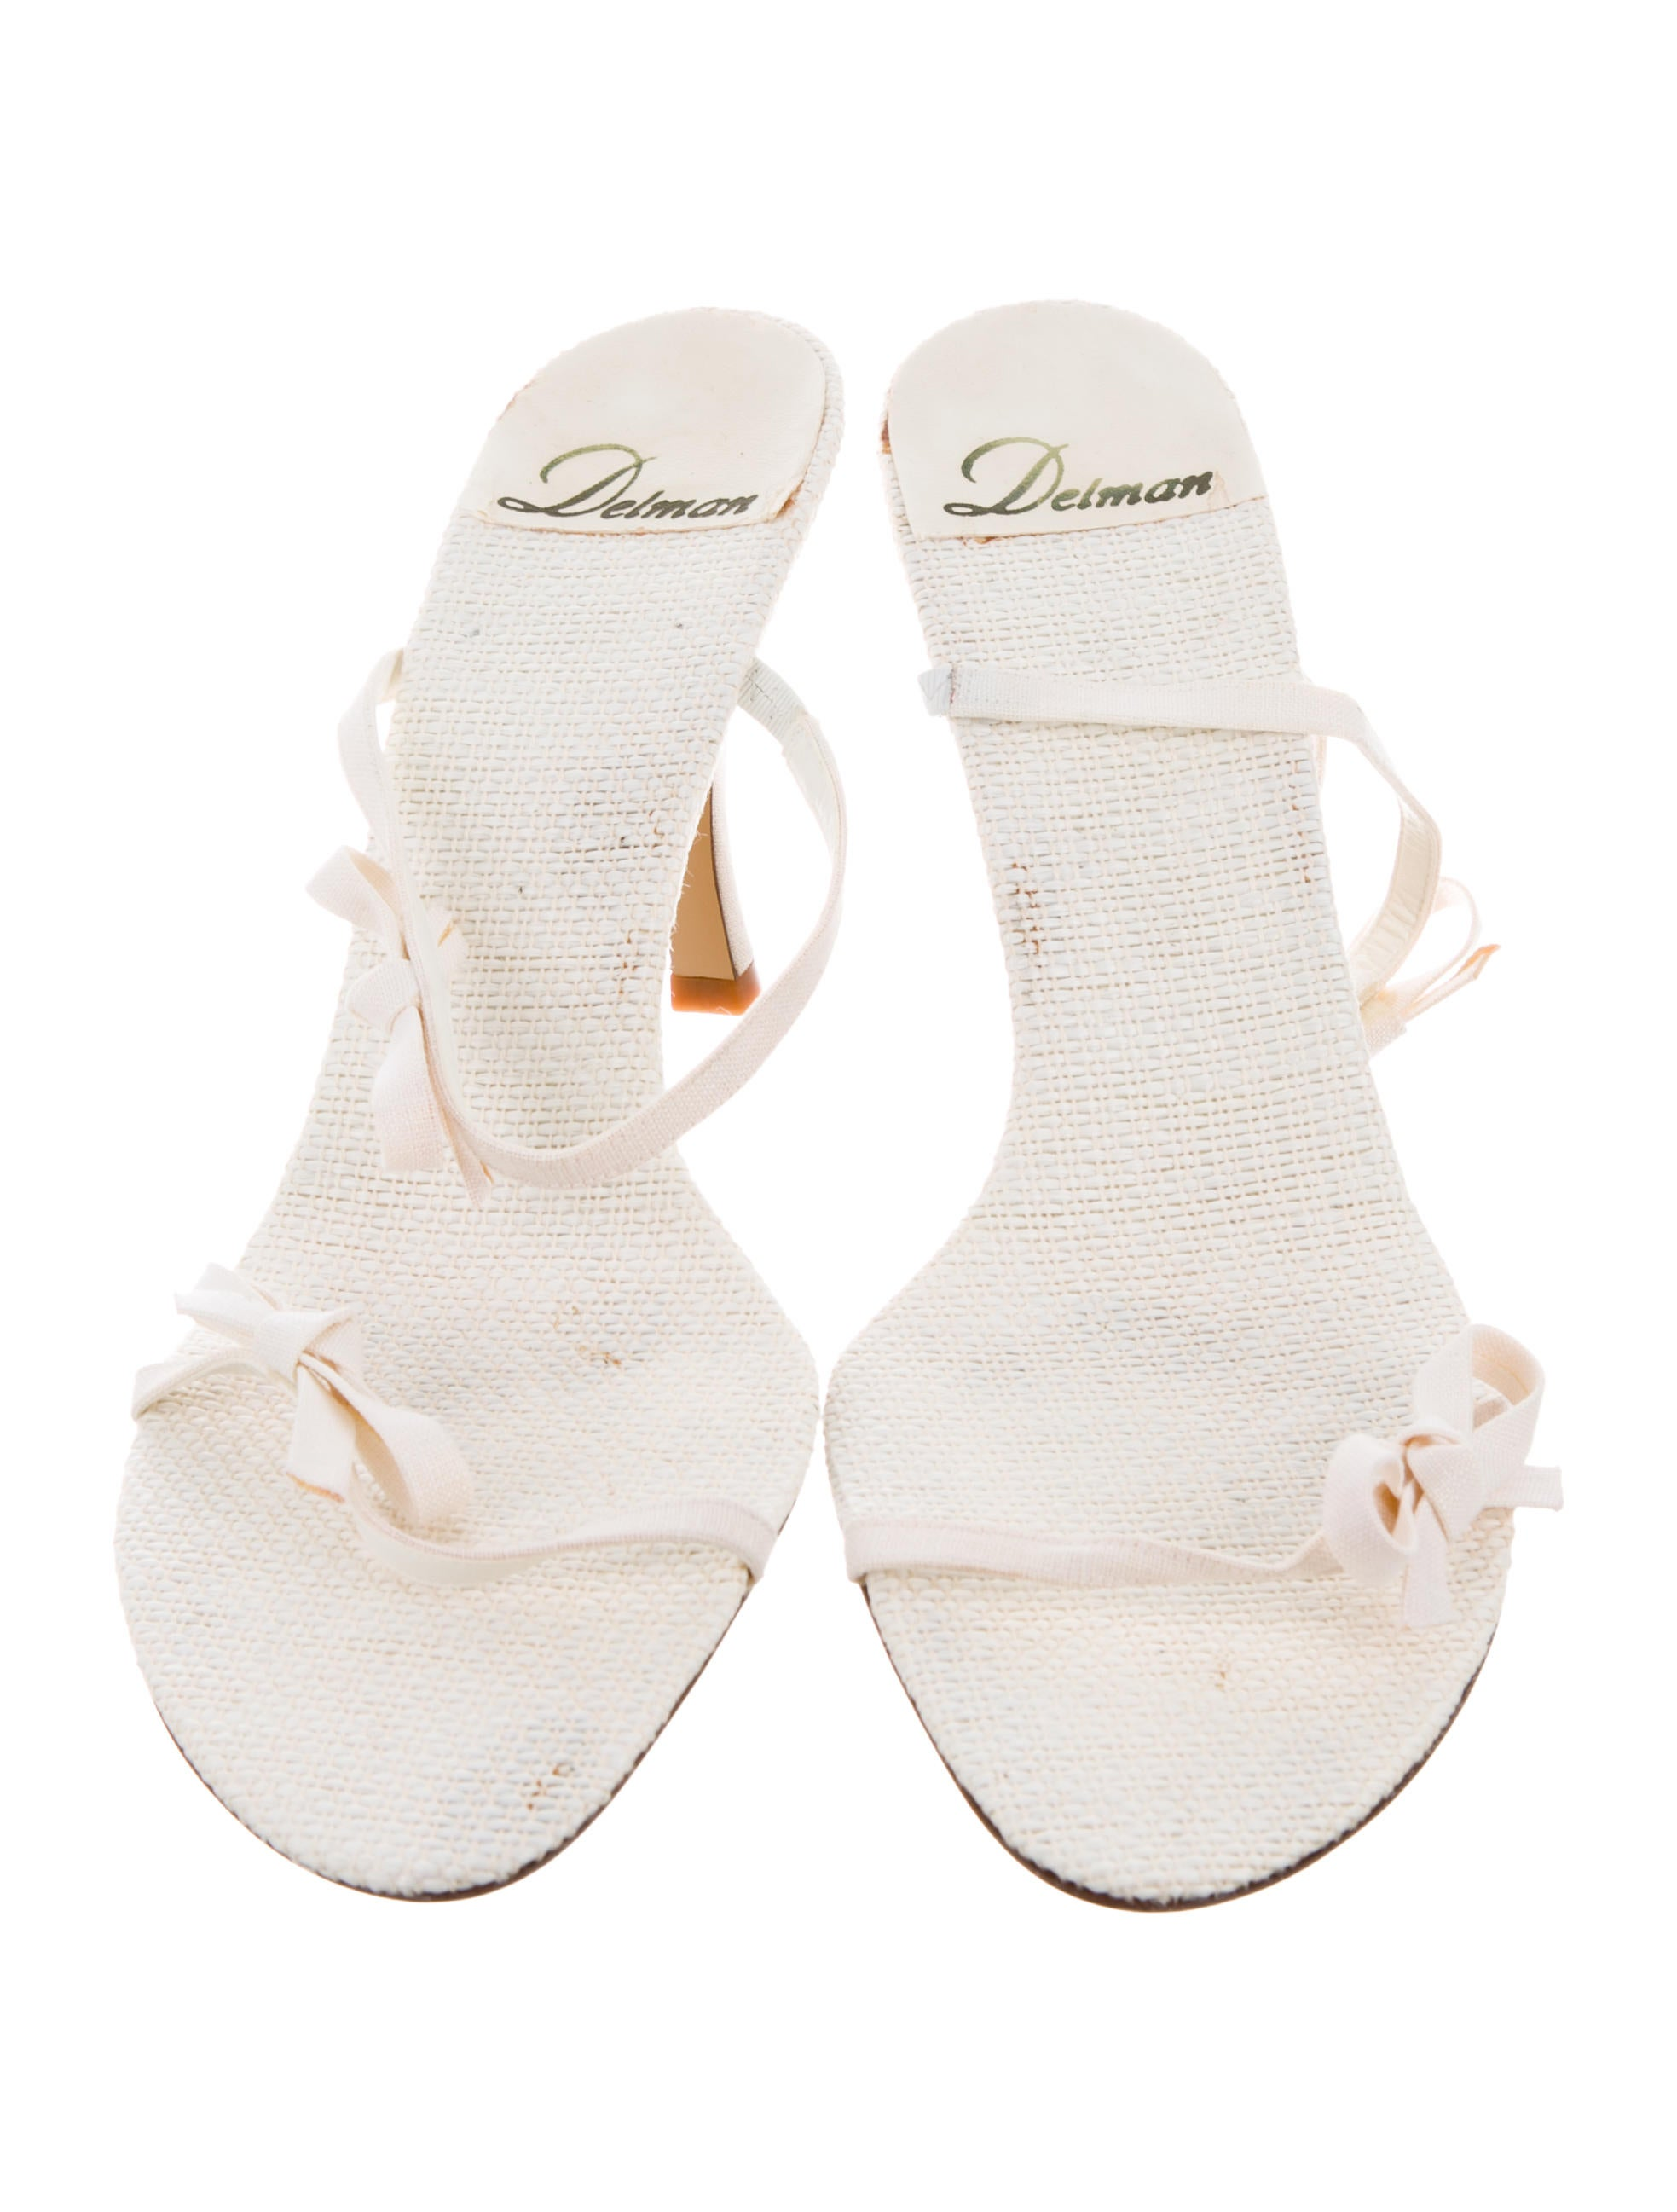 cheap 2014 unisex cheap pay with visa Delman Canvas Slide Sandals sale best store to get lowest price sale online BVOIyC8co